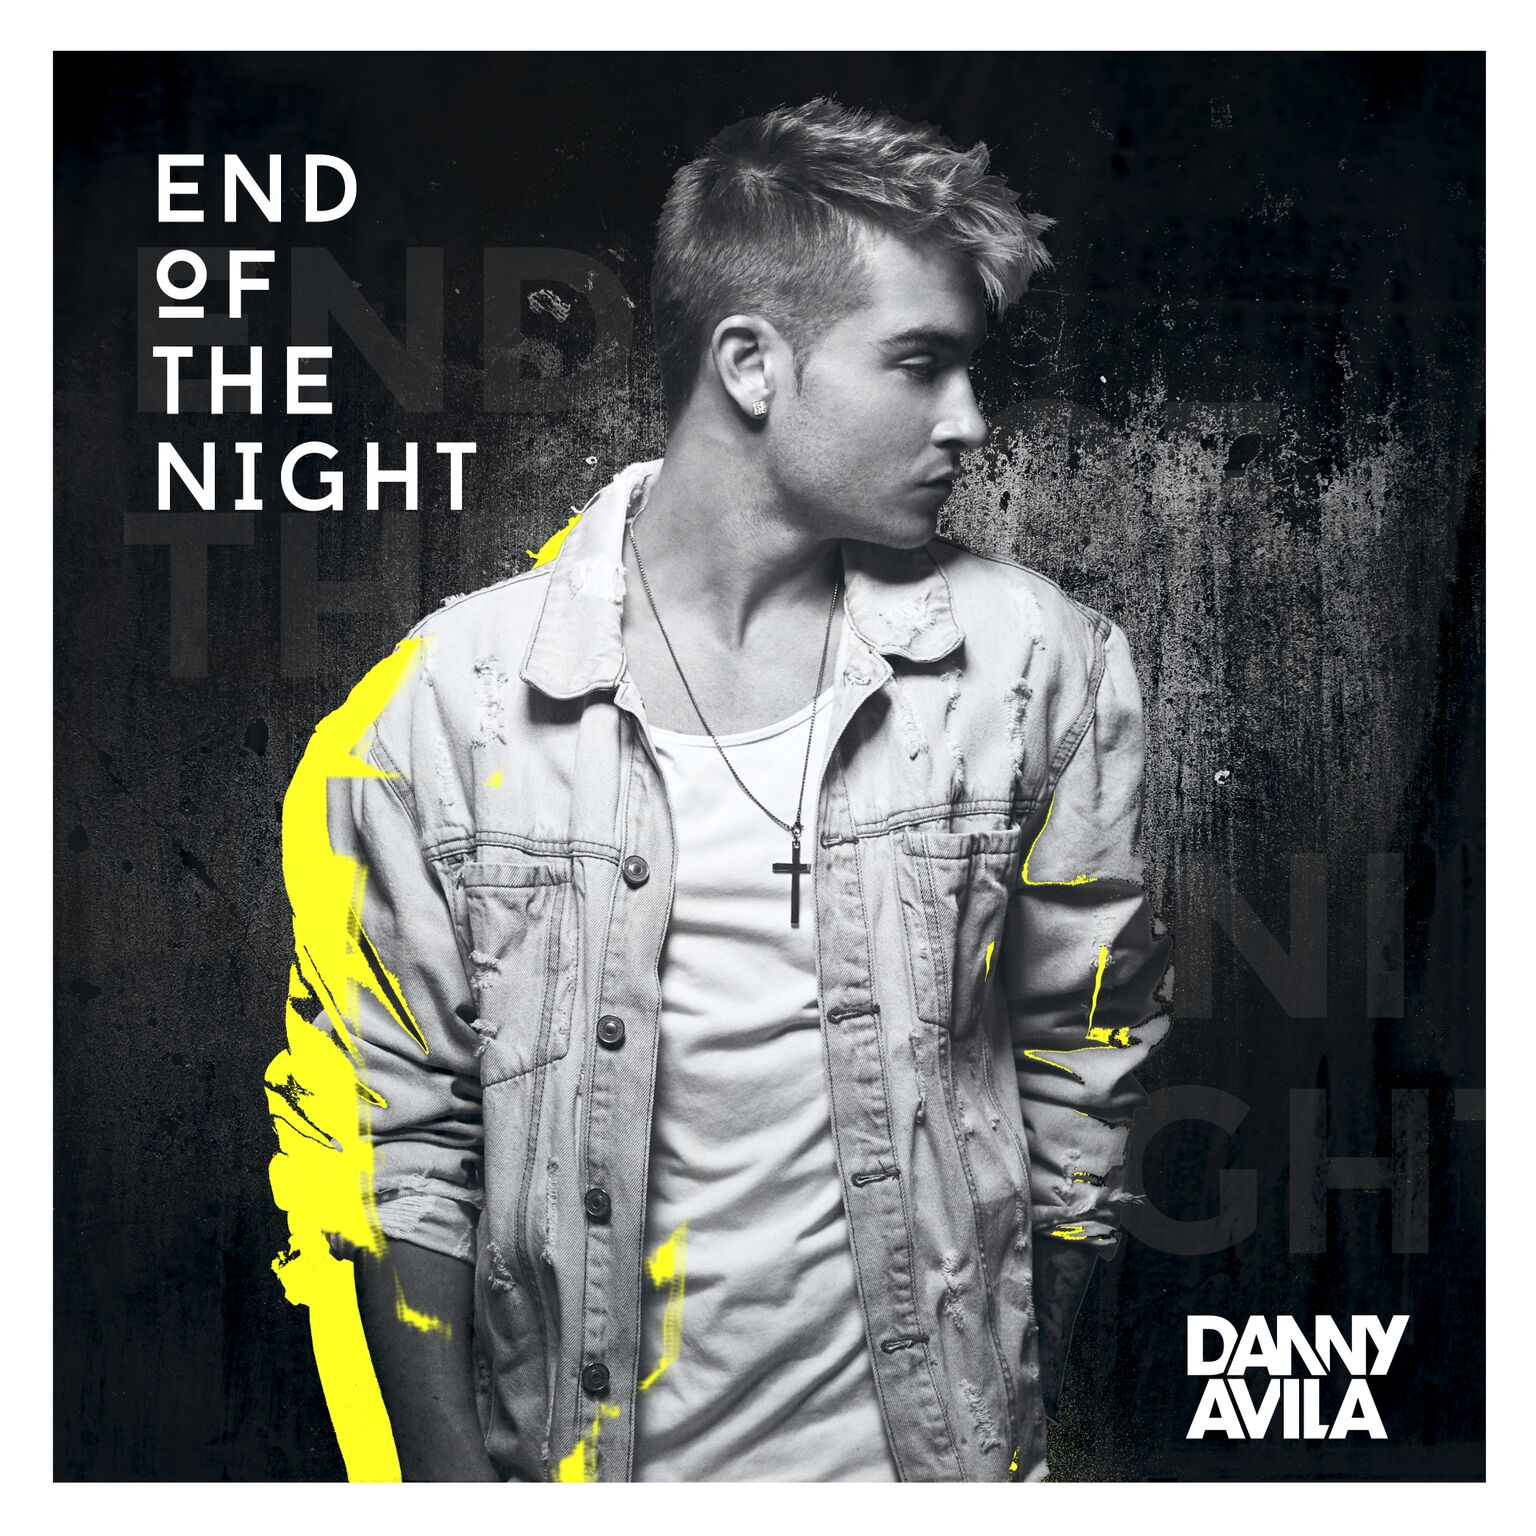 DANNY-AVILA-END-OF-THE-NIGHT